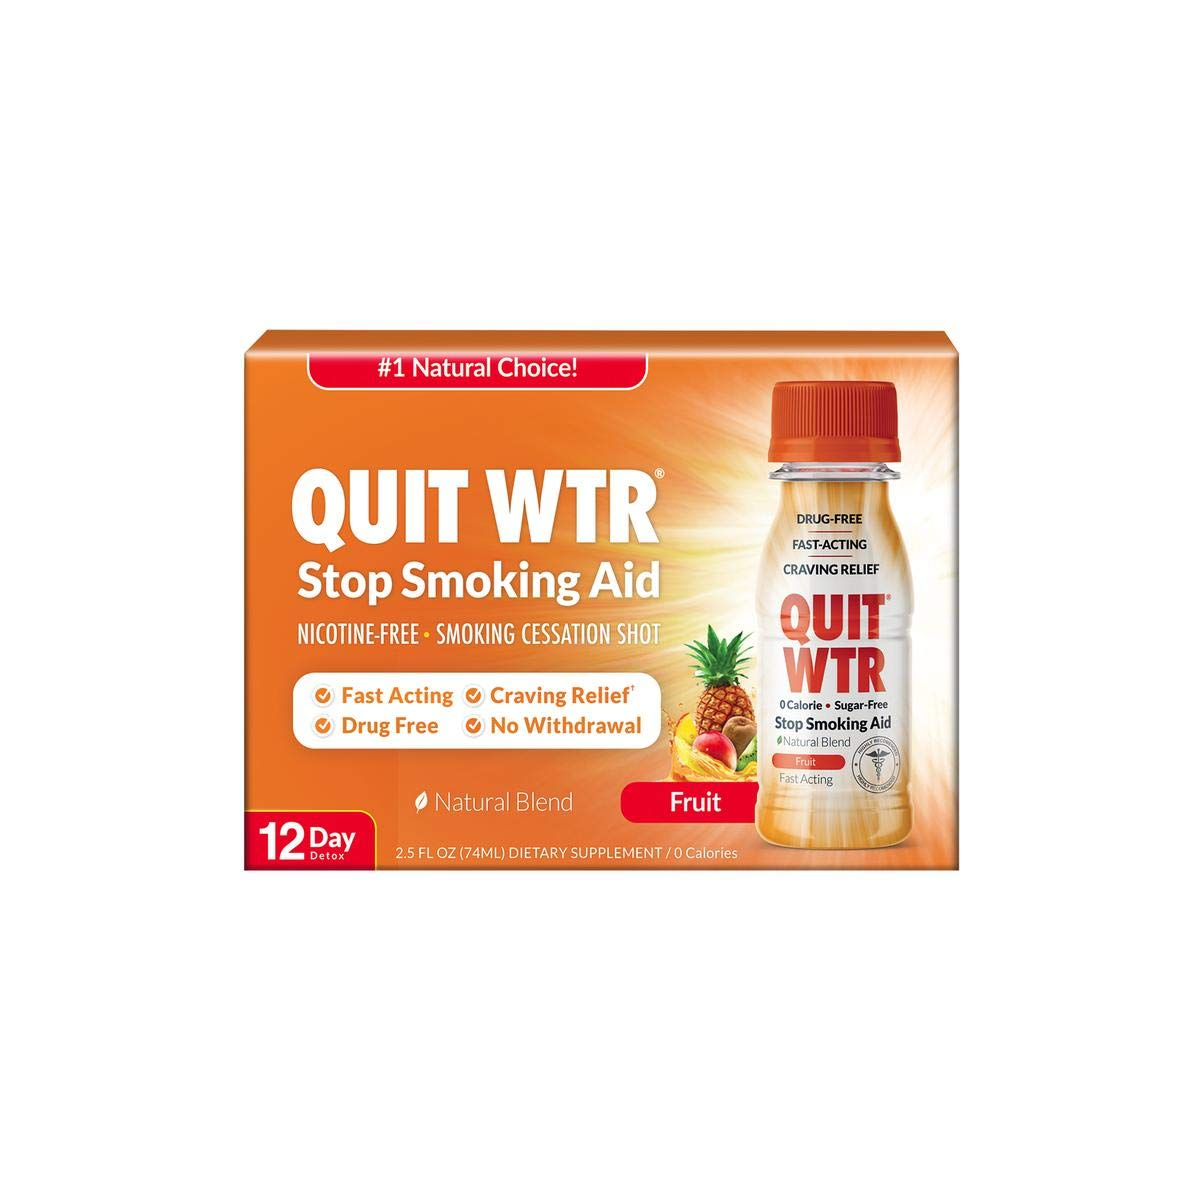 Safe Stop Smoking Shot/Smoking Cessation Supplement to Help Curb Cravings & Overcome The Urge to Smoke Fast (Fruit, 12 Day Detox)